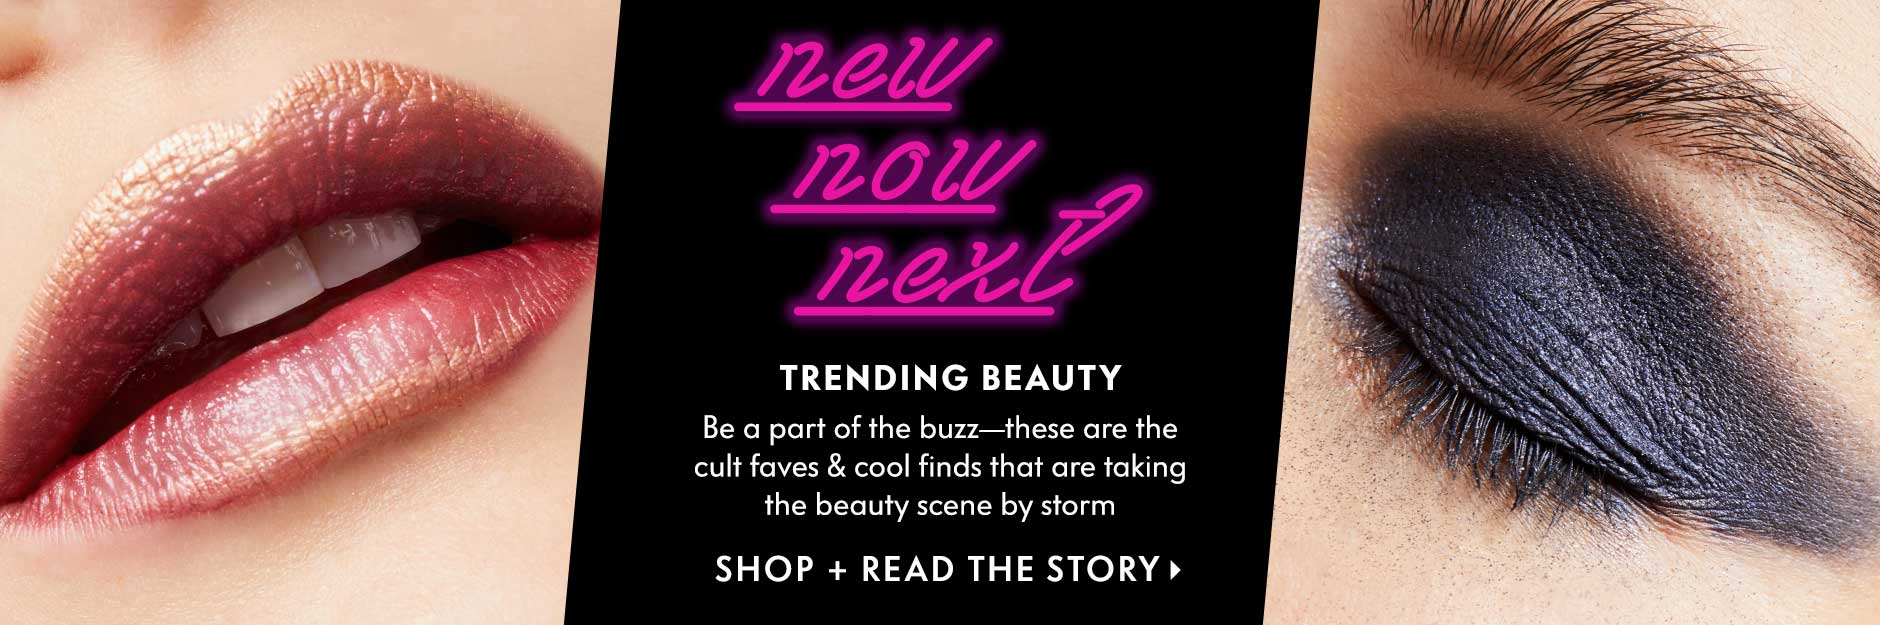 Trending Beauty - New. Now. Next. Be a part of the buzz???these are the cult faves & cool finds that are taking the beauty scene by storm